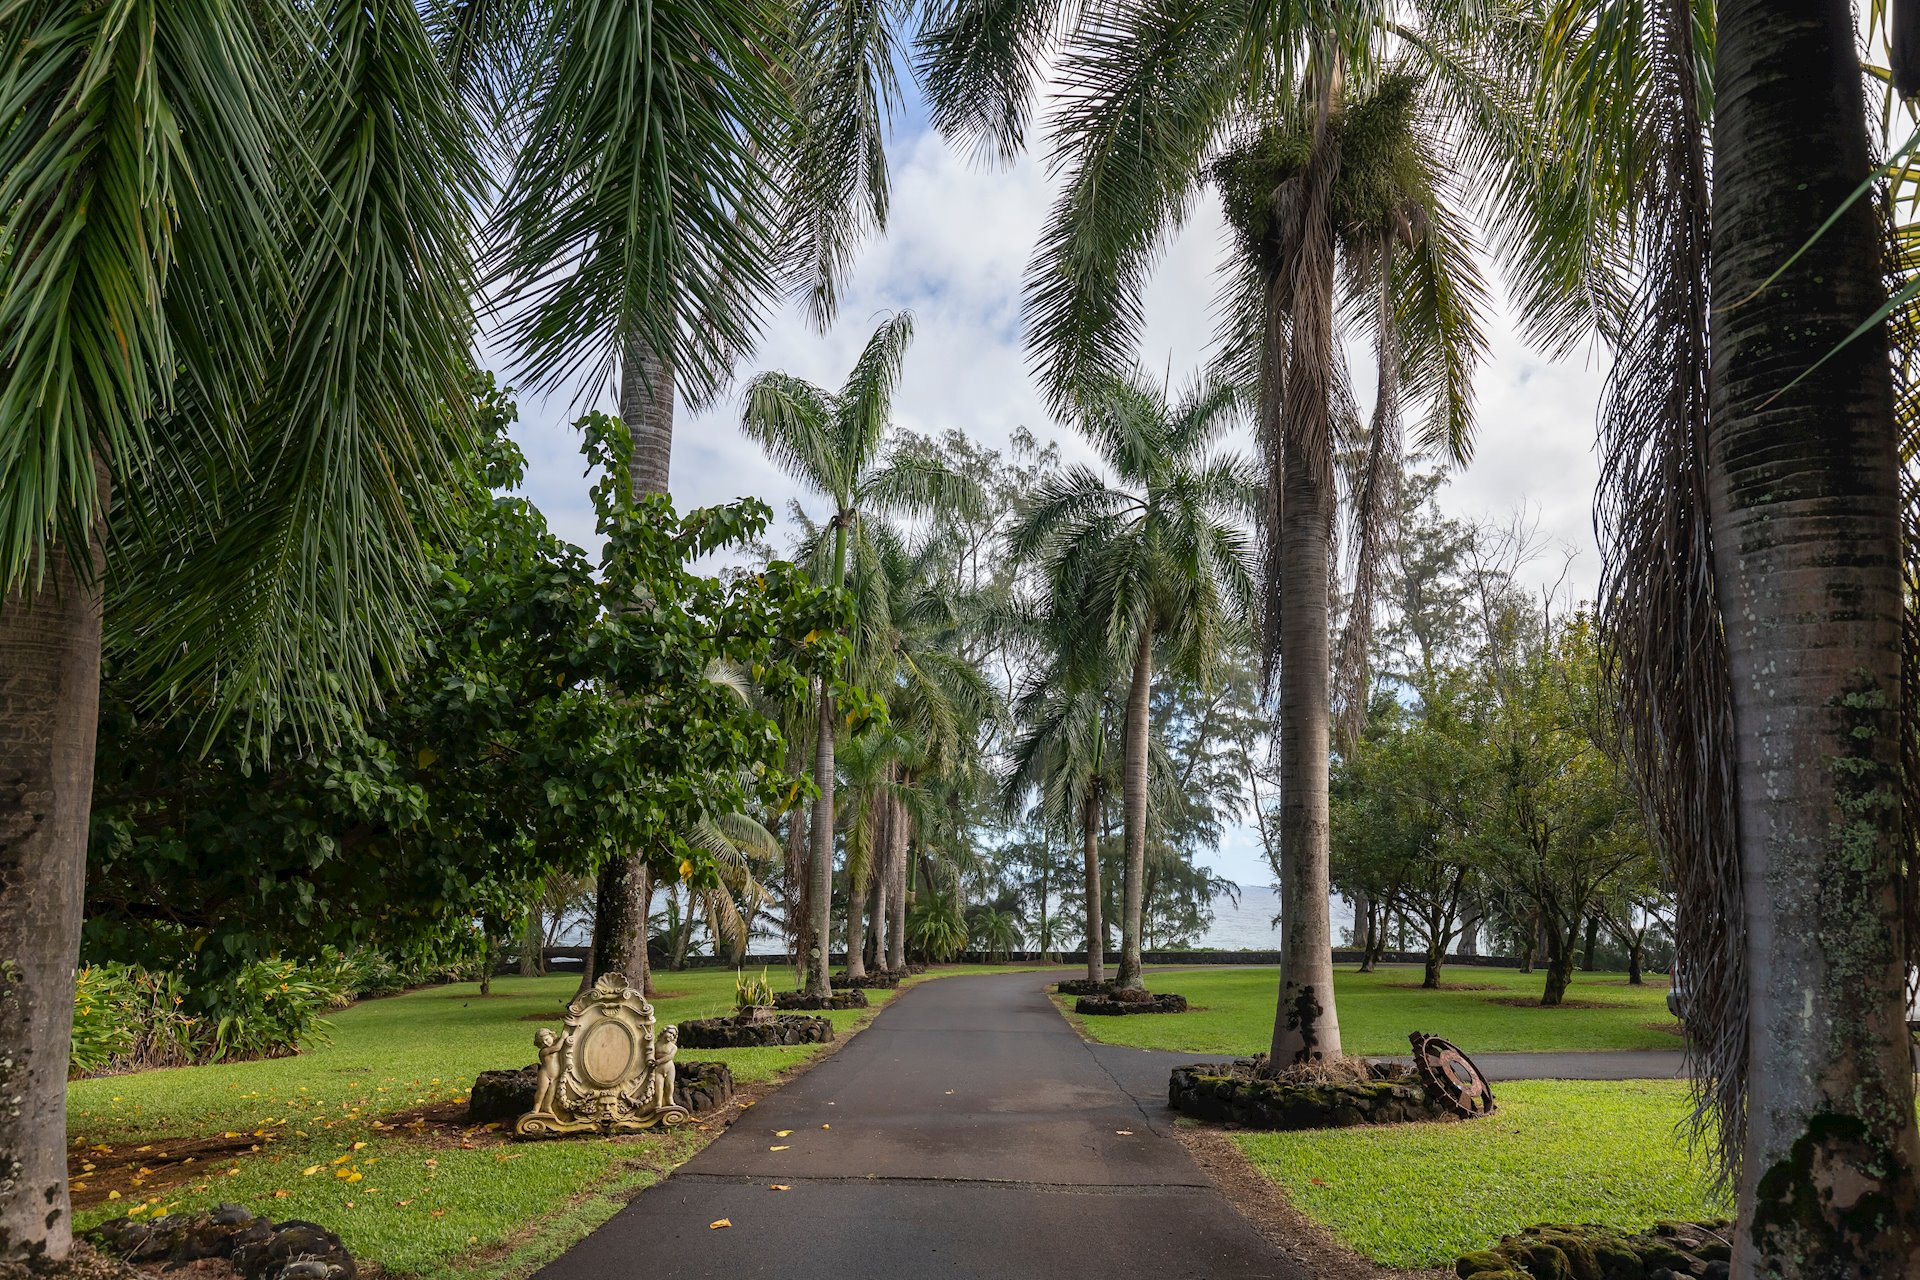 A picture perfect palm lined driveway offers a stunning first impression of the combined grandeur of the lush tropical vegetation and ocean setting.